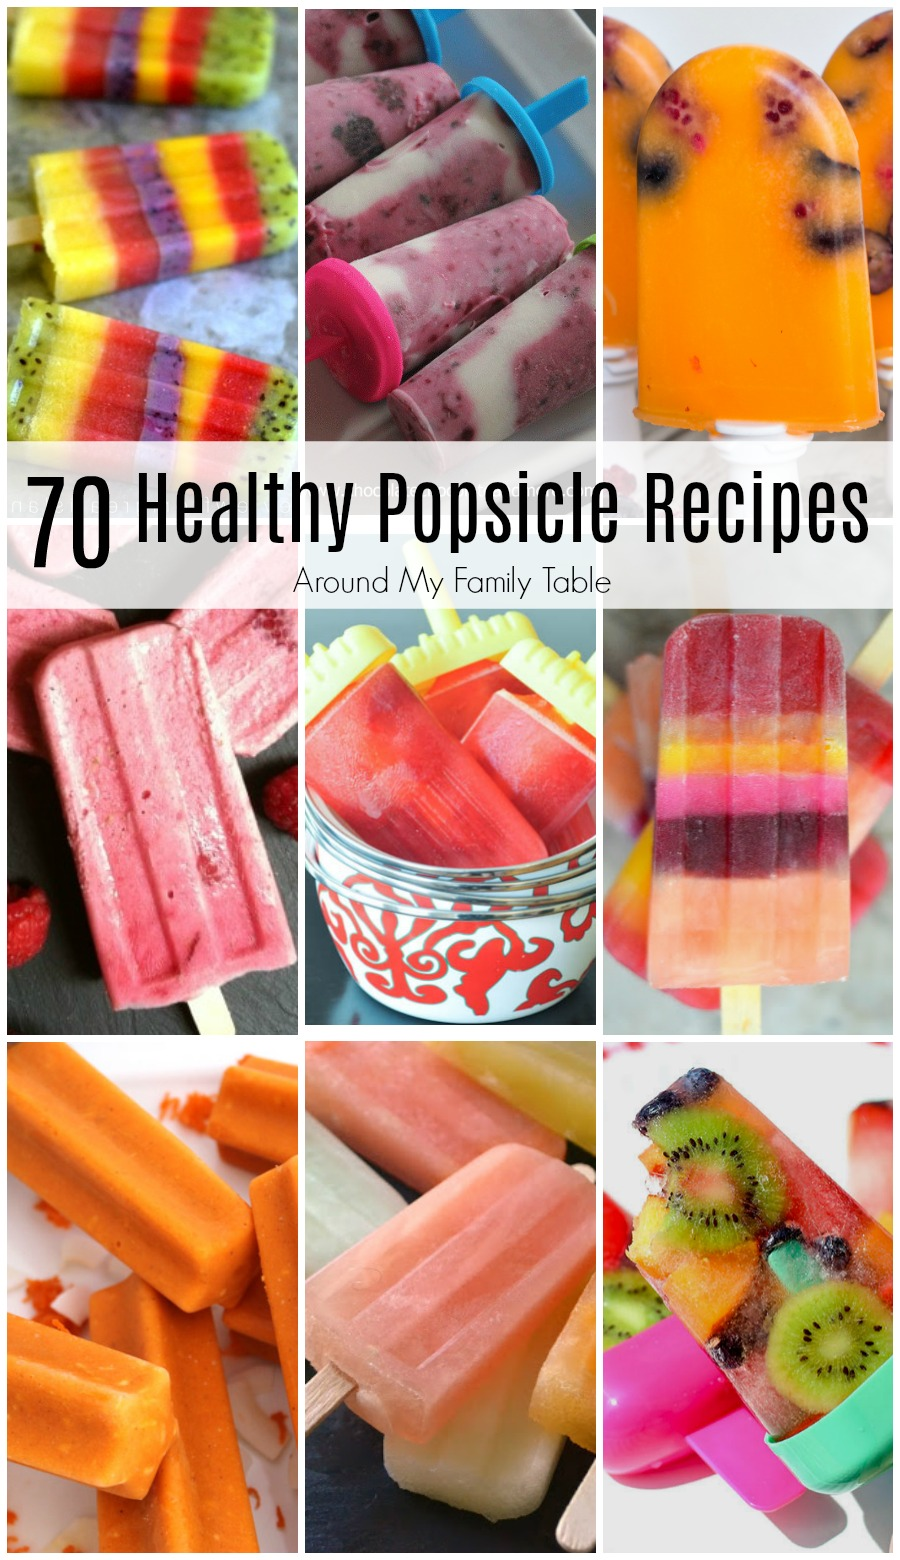 Popsicles are such a perfect treat on a hot day. It's so easy to make your own at home with one of these Healthy Popsicle Recipes....there are over 70 on this list!